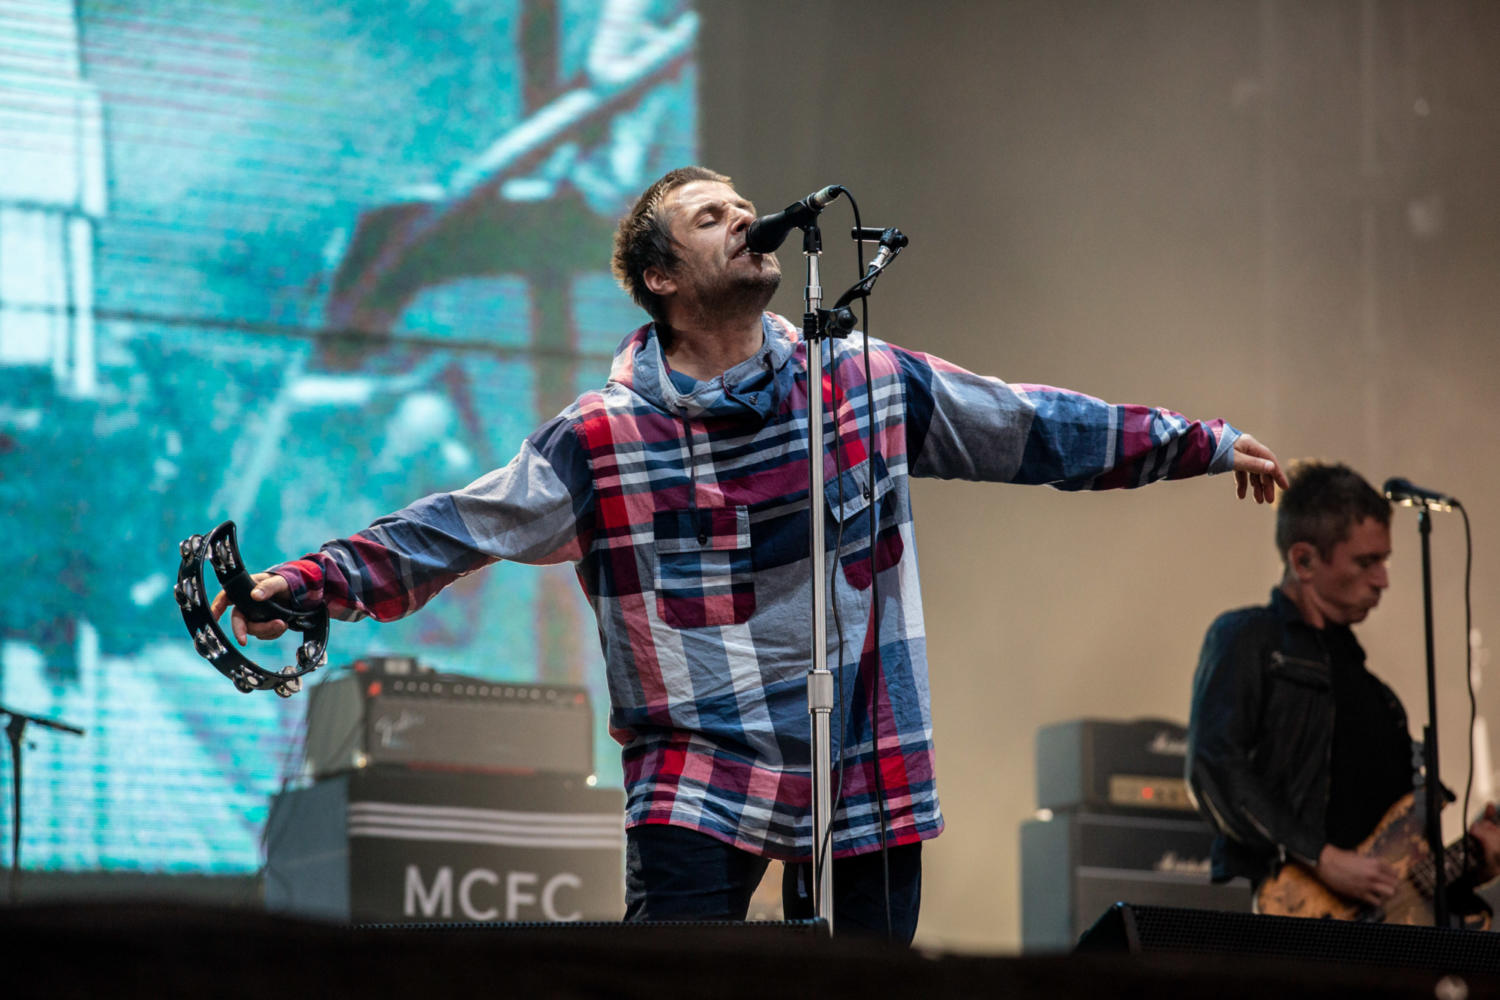 Liam Gallagher to release 'MTV Unplugged' album